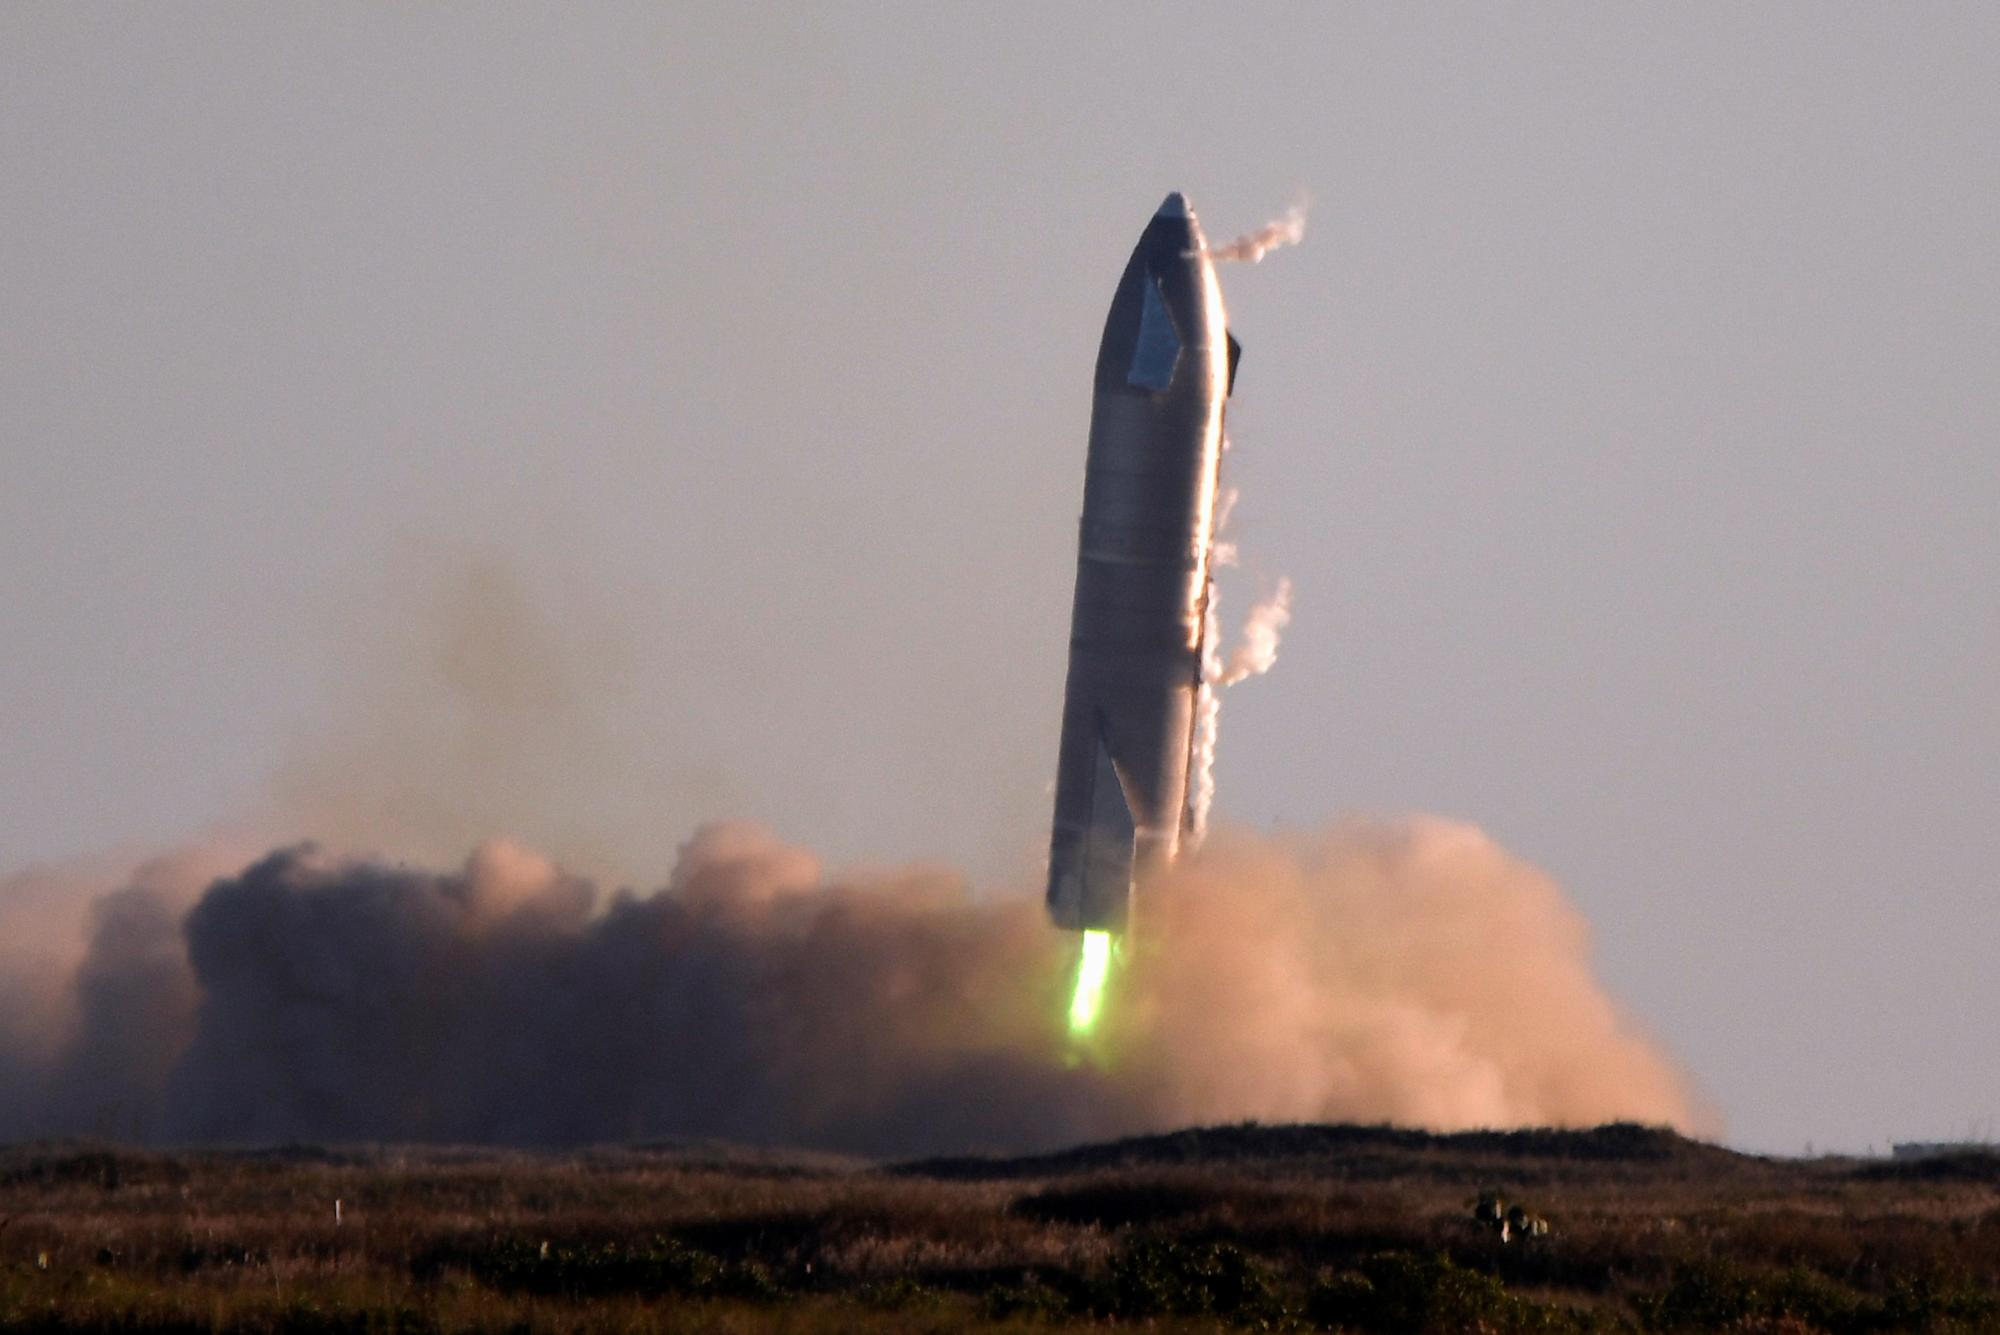 SpaceX once again shows the Starship test flight